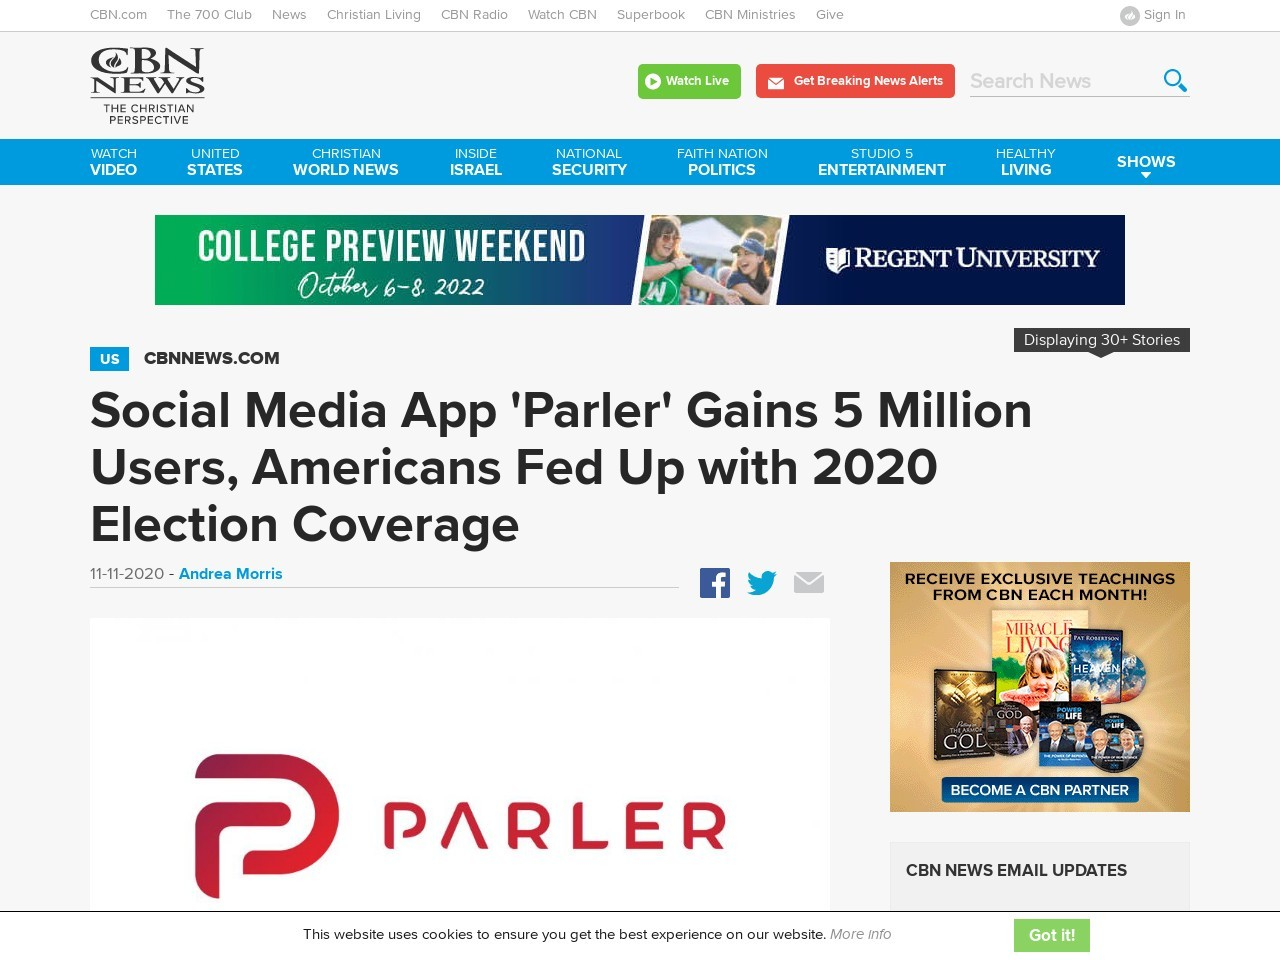 Social Media App 'Parler' Gains 5 Million Users, Americans Fed Up with 2020 Election Coverage